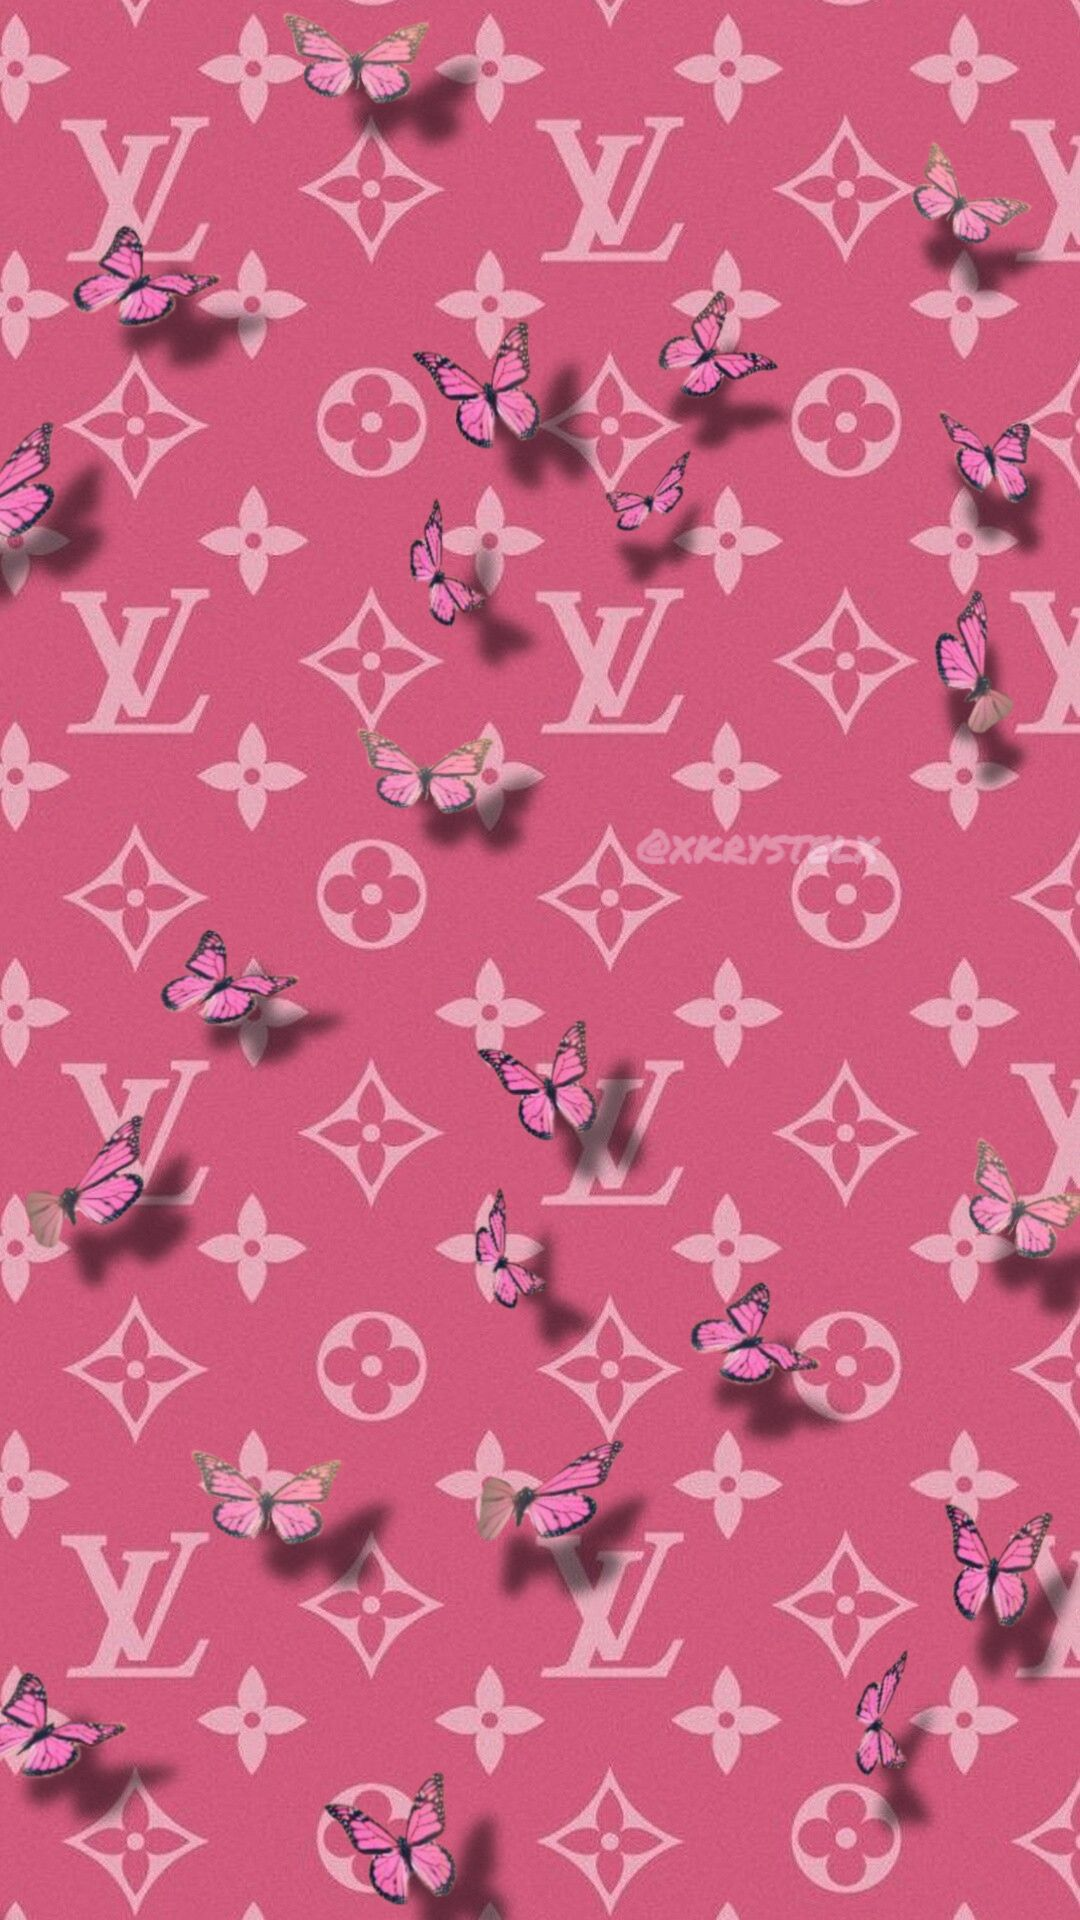 Im Just Going To Be Making Wallpapers Now Baddie Louisvuitton Wa In 2020 Iphone Wallpaper Tumblr Aesthetic Butterfly Wallpaper Iphone Aesthetic Iphone Wallpaper